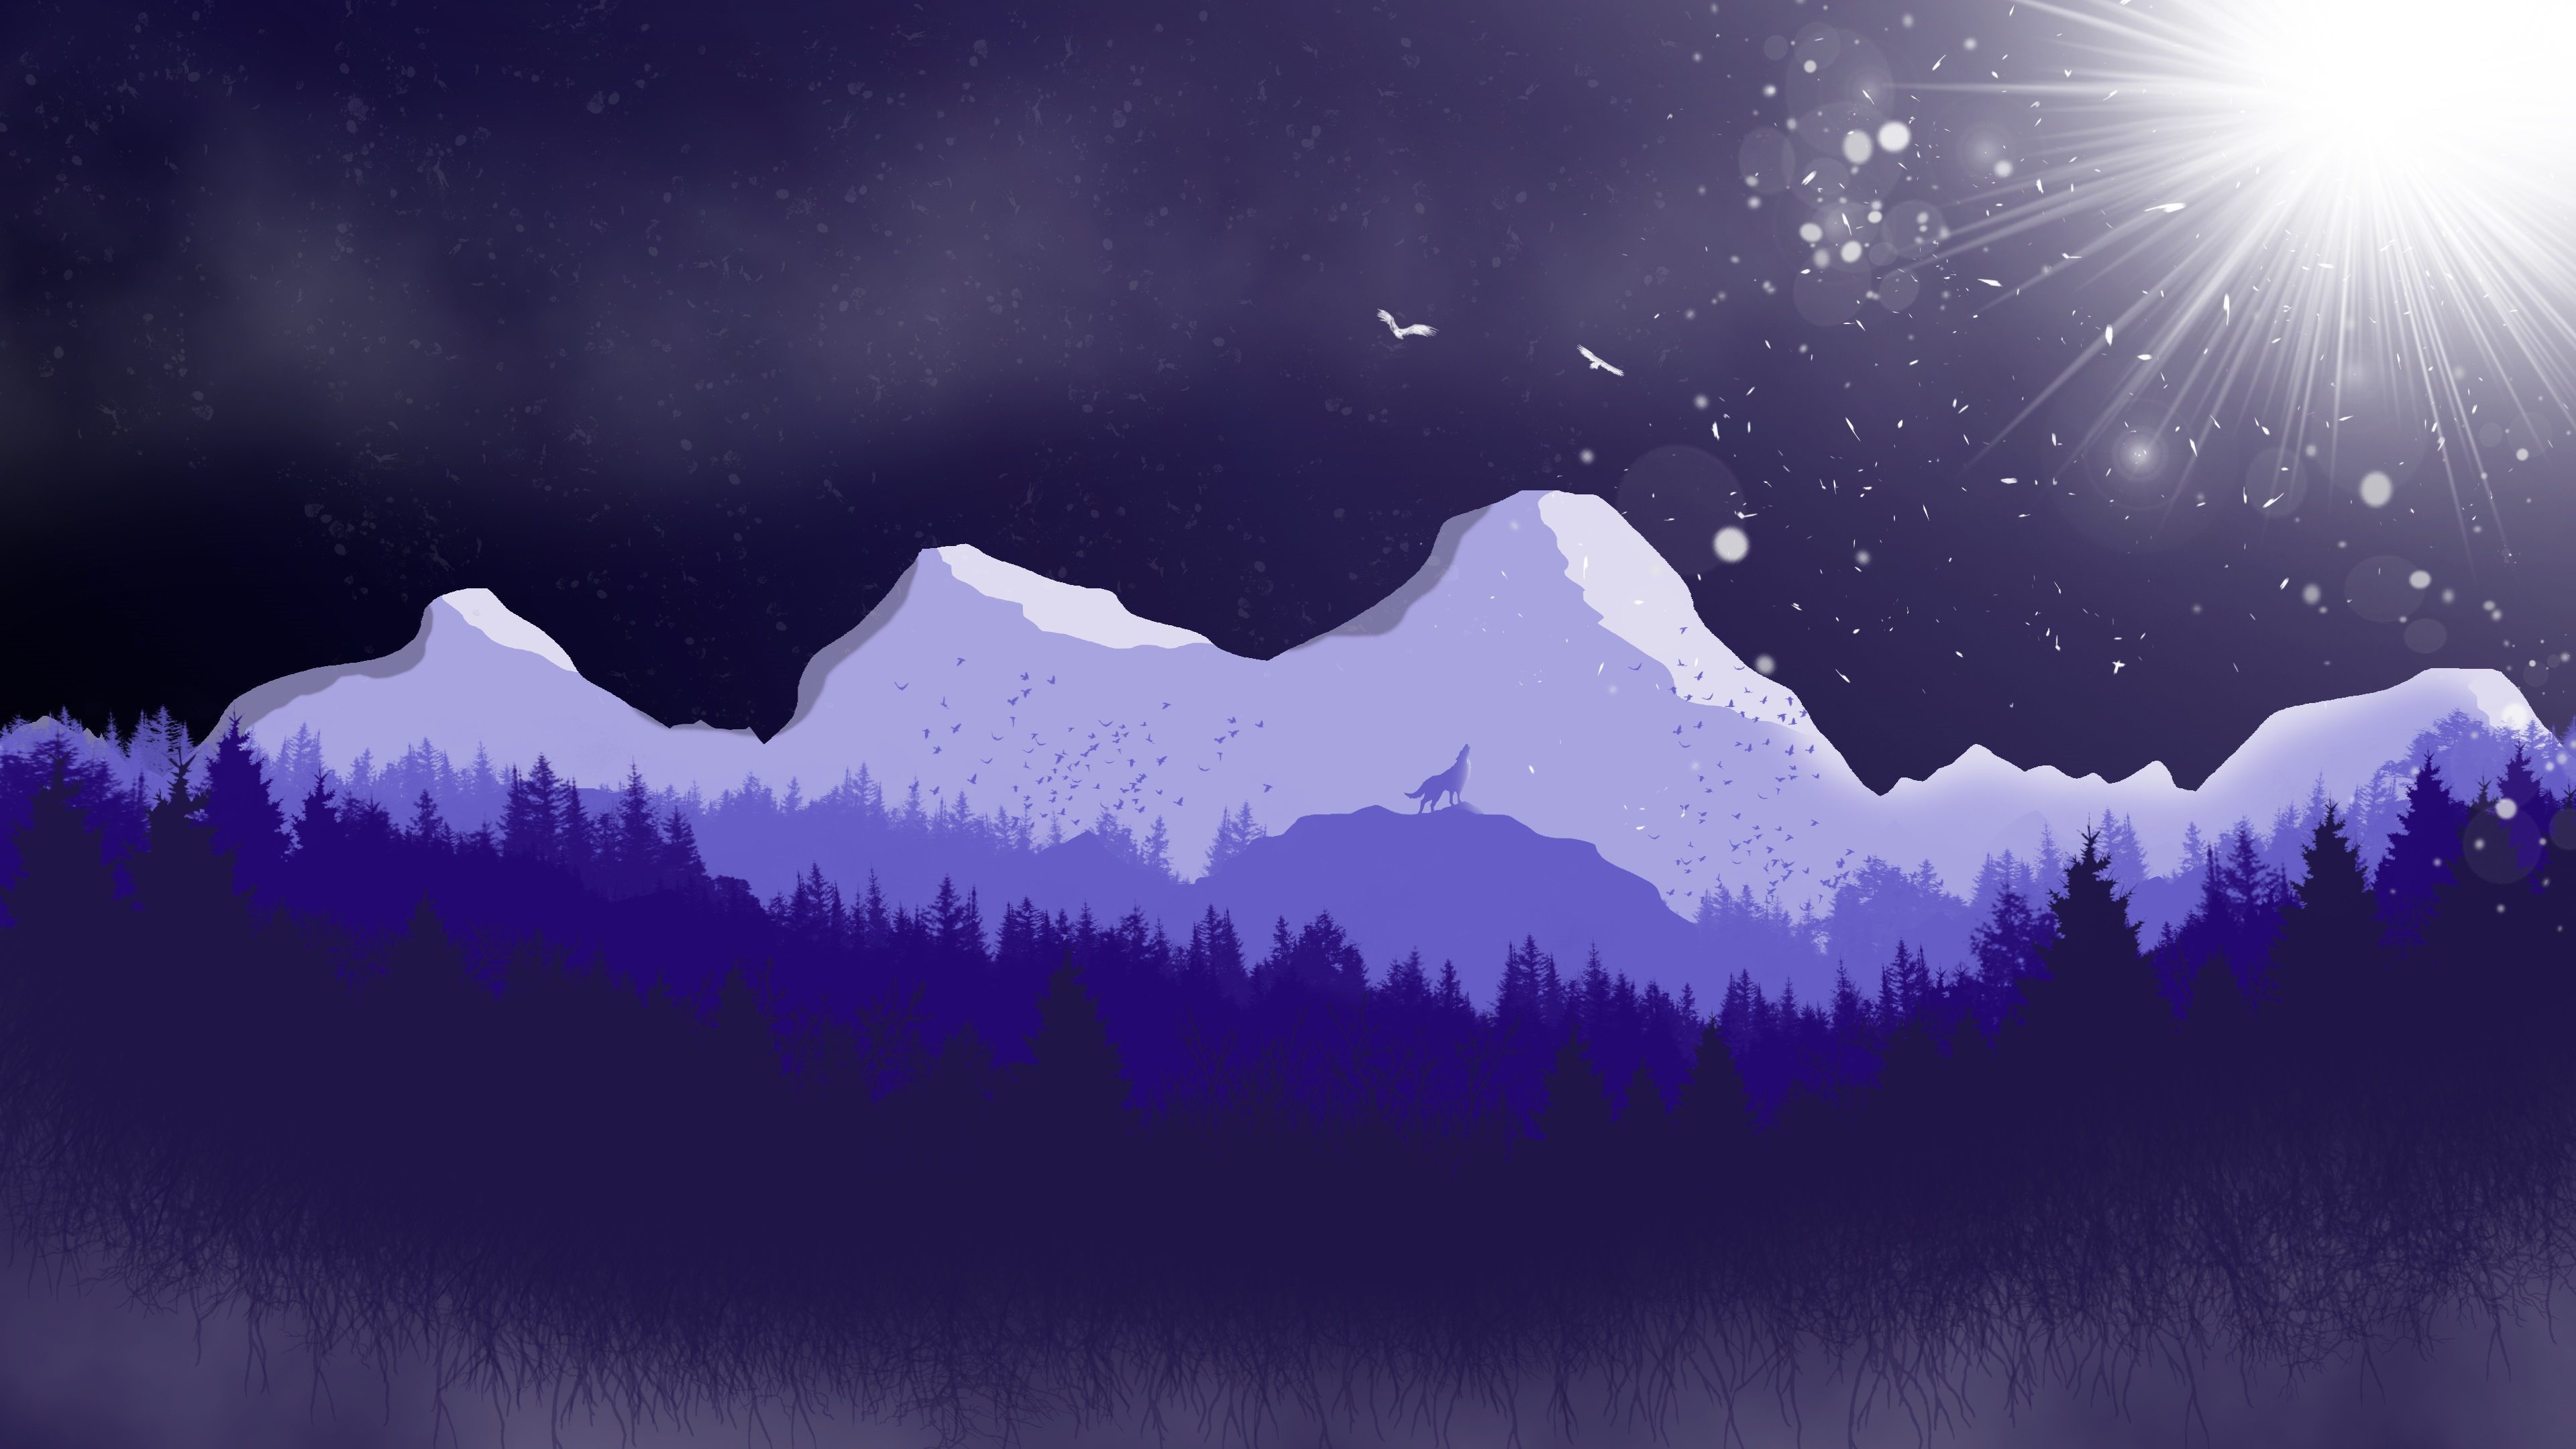 Wolf howling in the forest wallpaper